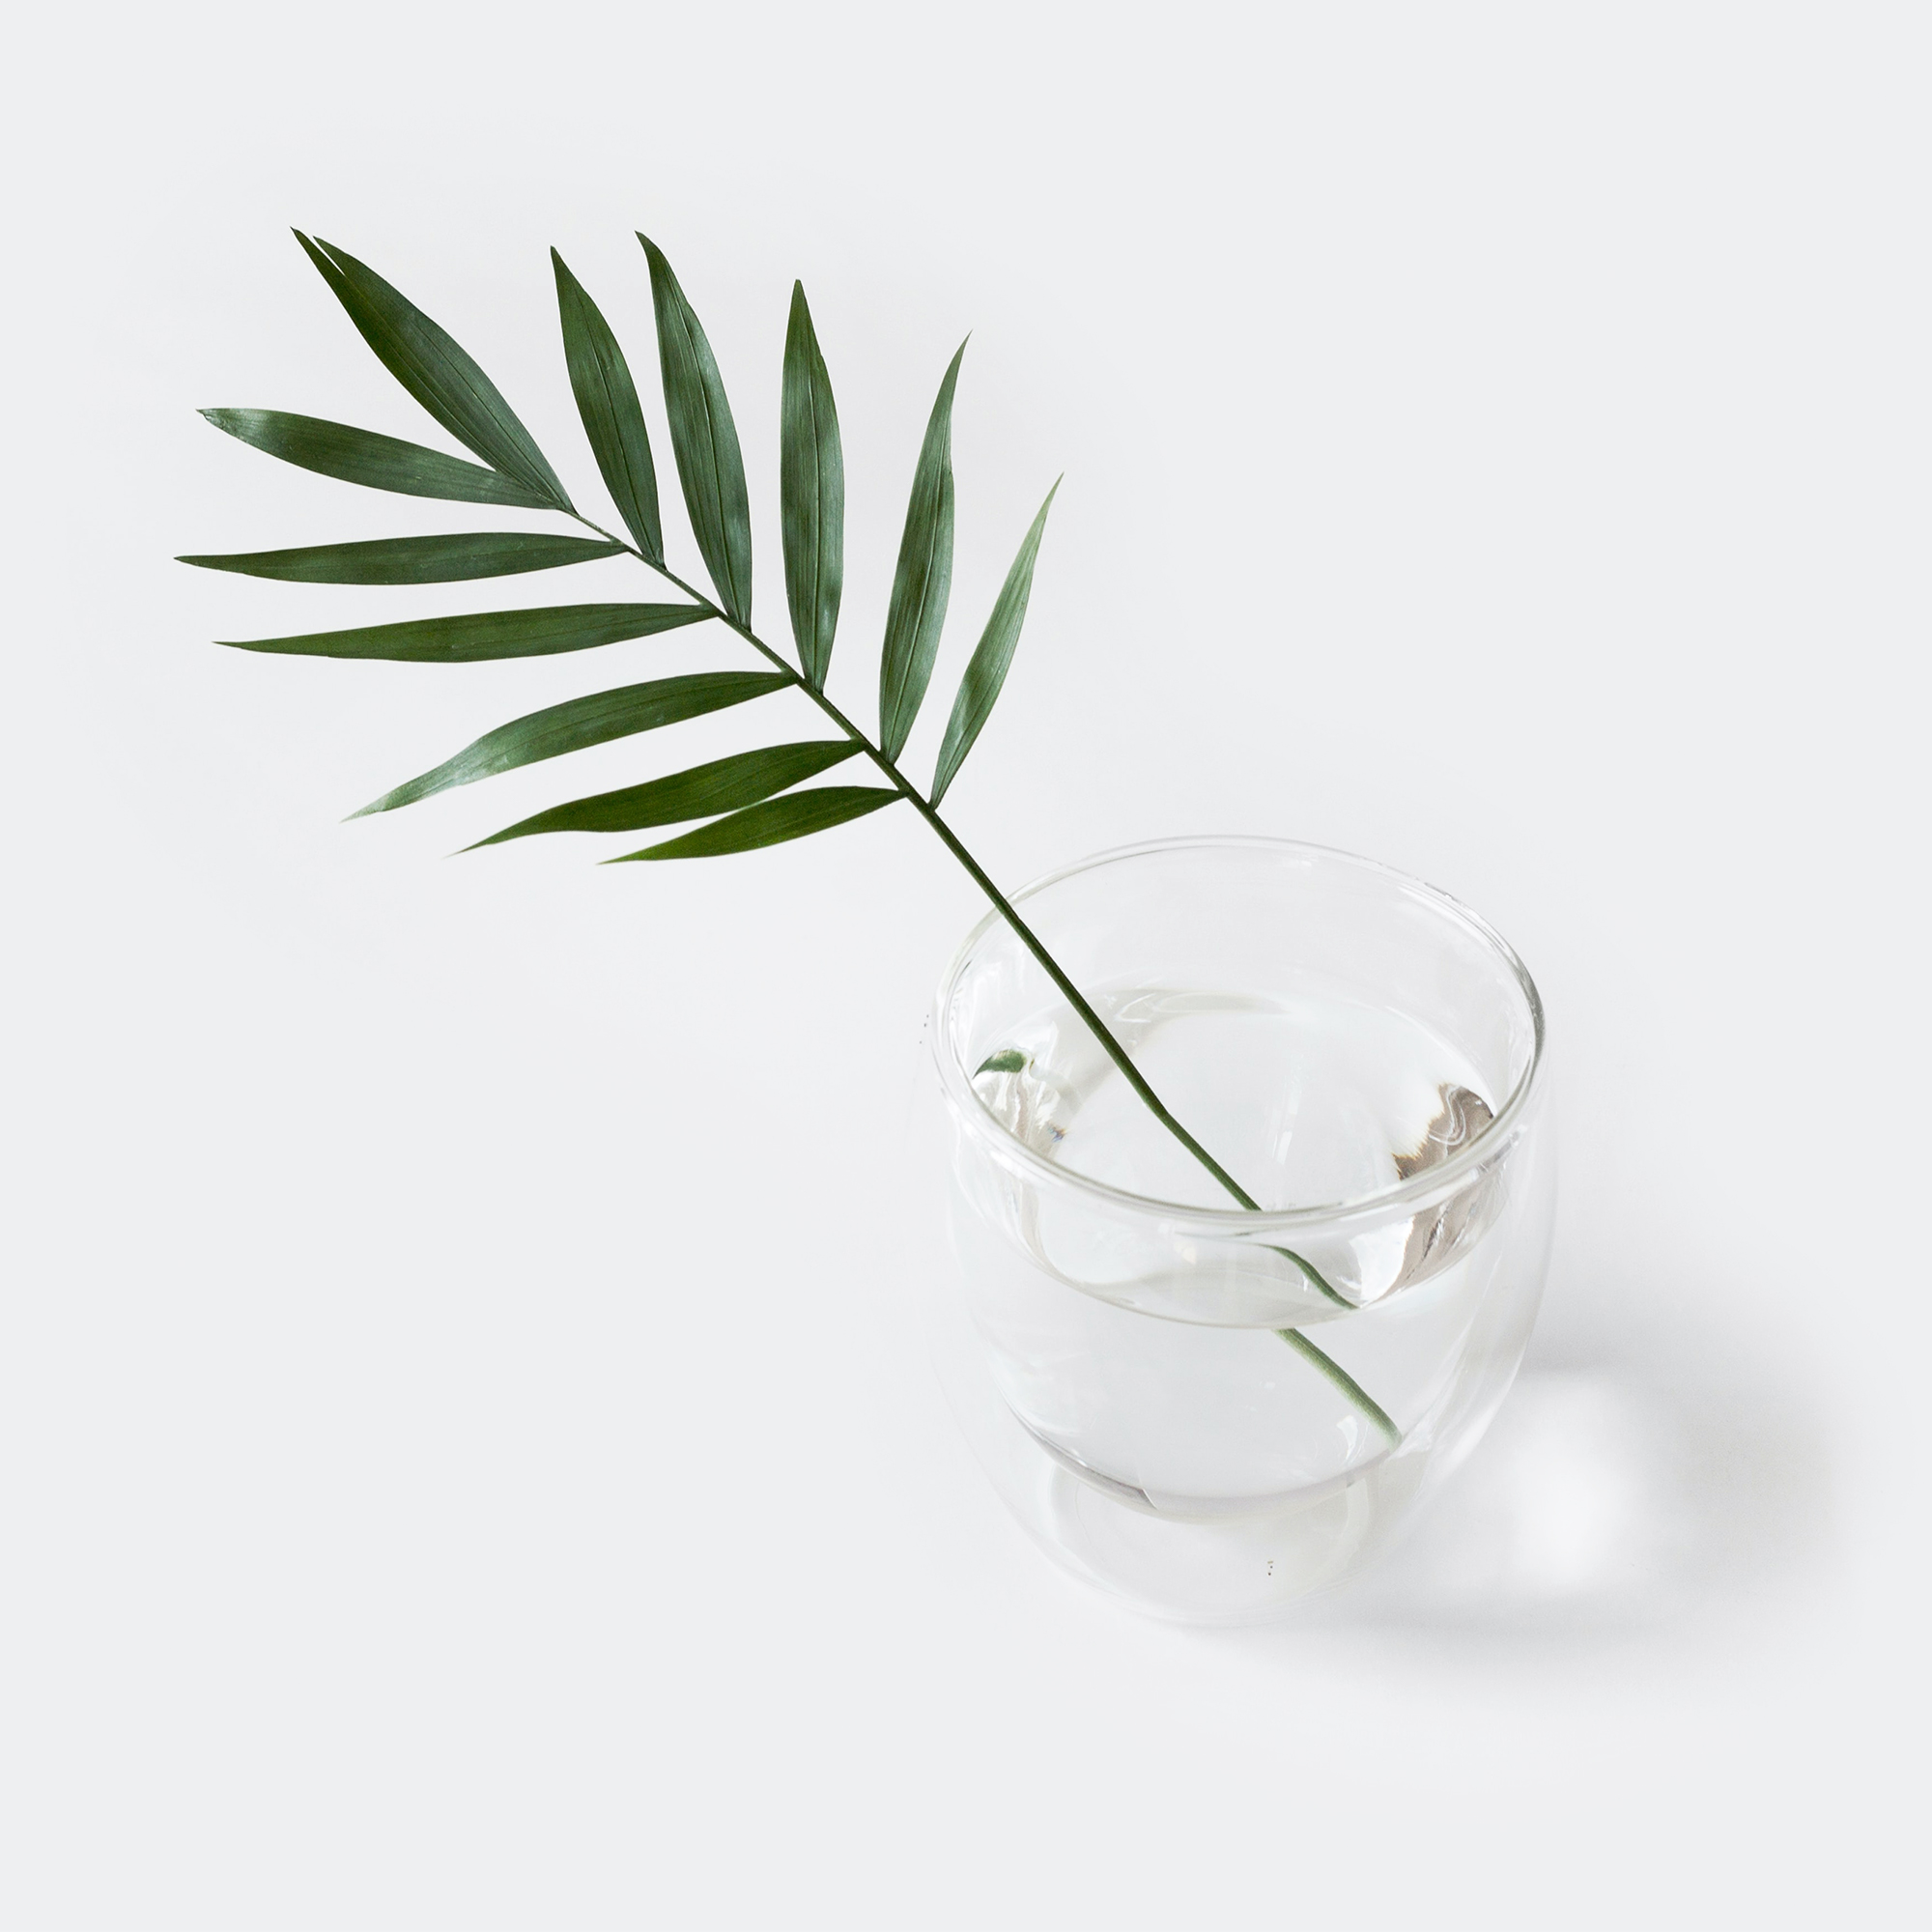 A plant in a glass of water